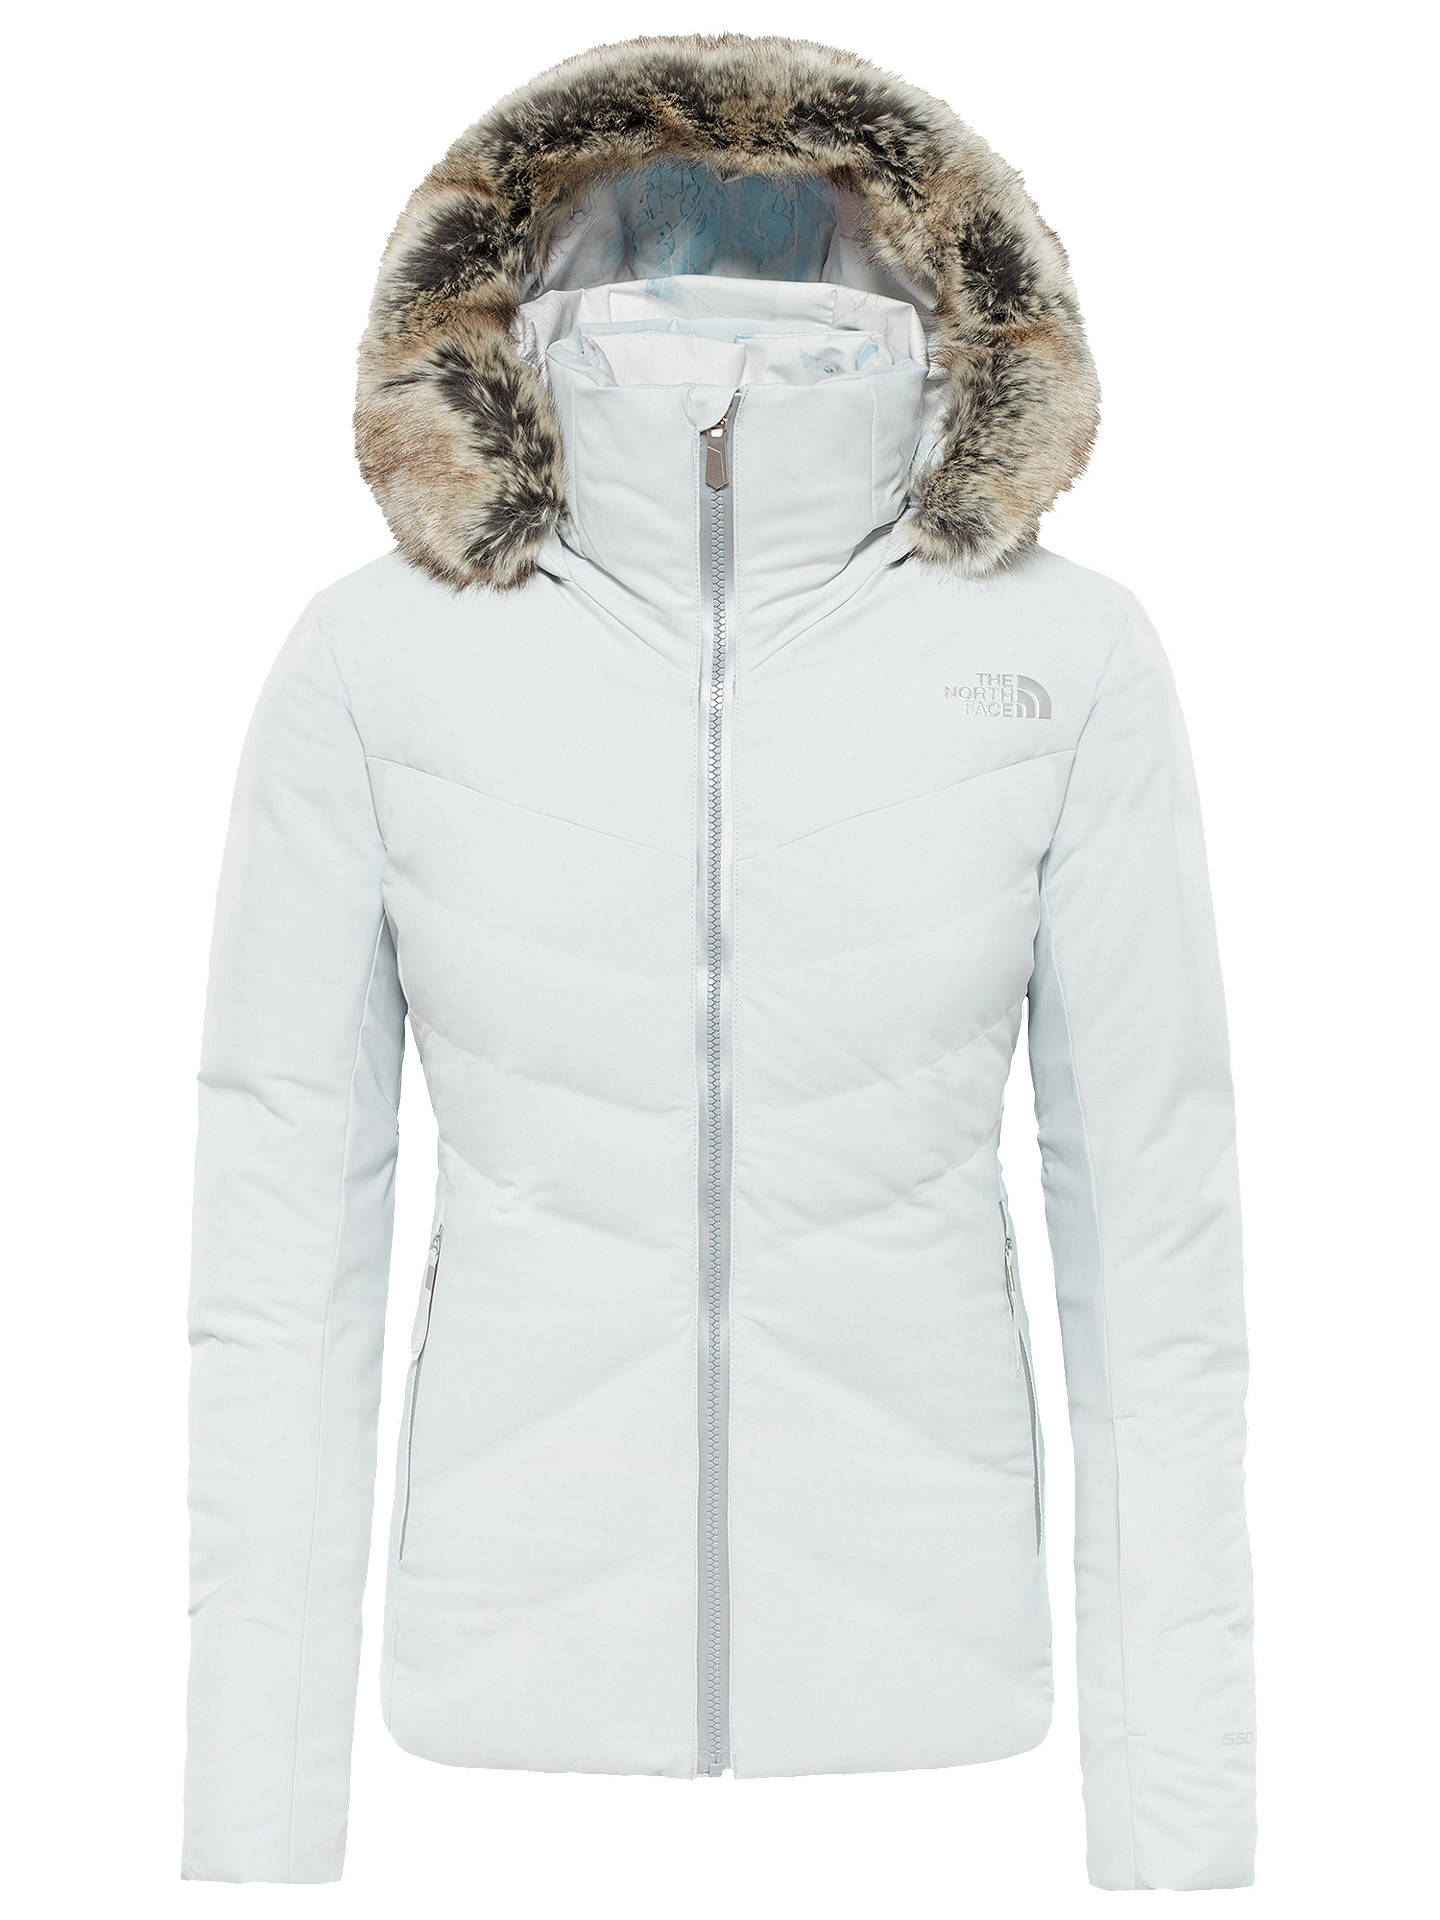 8457cd7ce5 BuyThe North Face Women s Cirque Down Ski Jacket